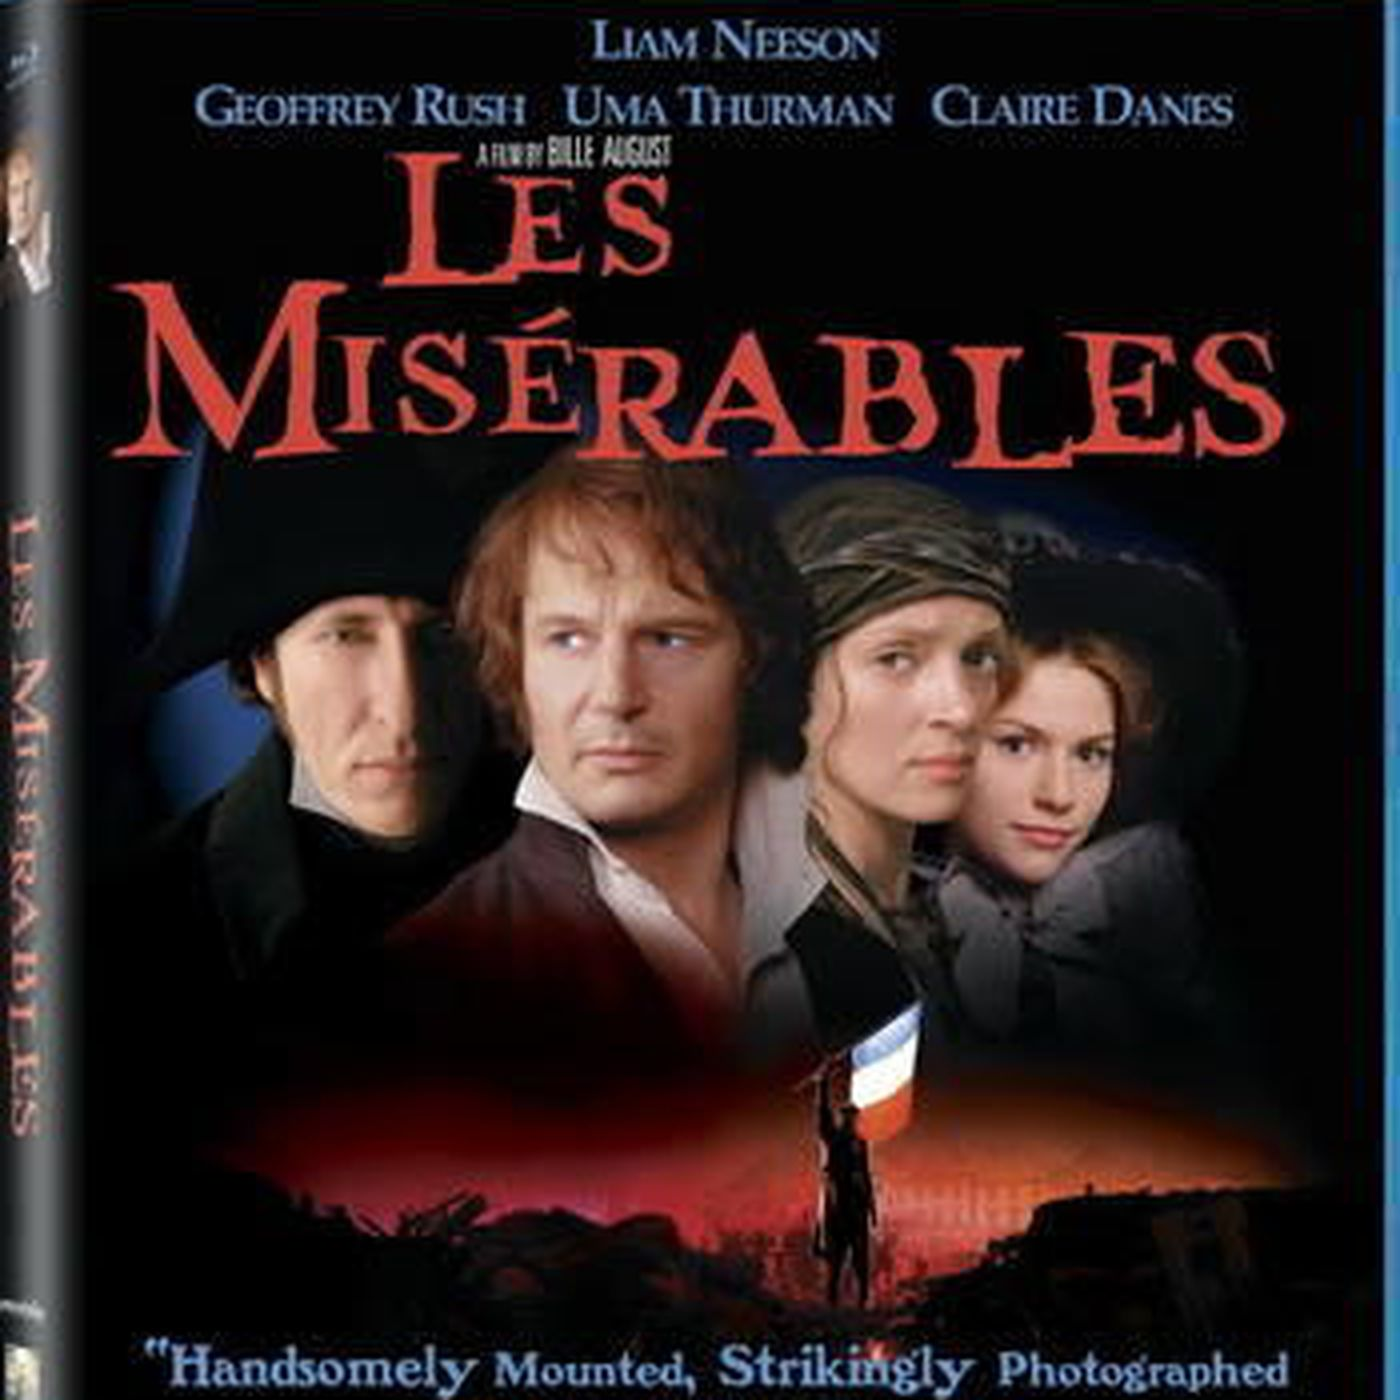 Chris Hicks Liam Neeson S Version Of The Oft Filmed Les Miserables Gets A Blu Ray Upgrade Deseret News